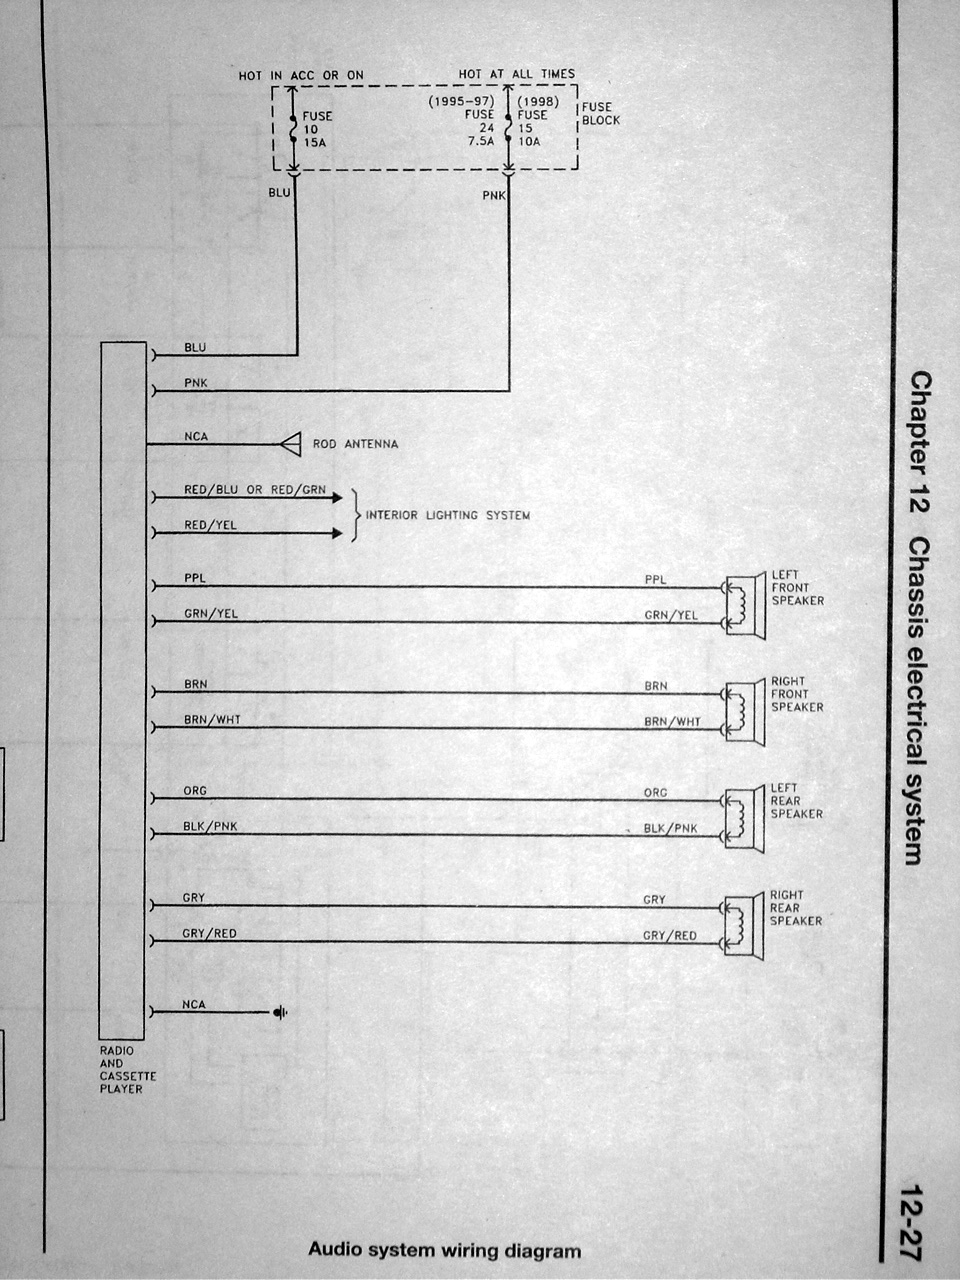 2010 Jetta Radio Fuse 42 Explore Schematic Wiring Diagram Rcd 510 1998 Nissan Altima 33 Images Diagrams Crackthecode Co